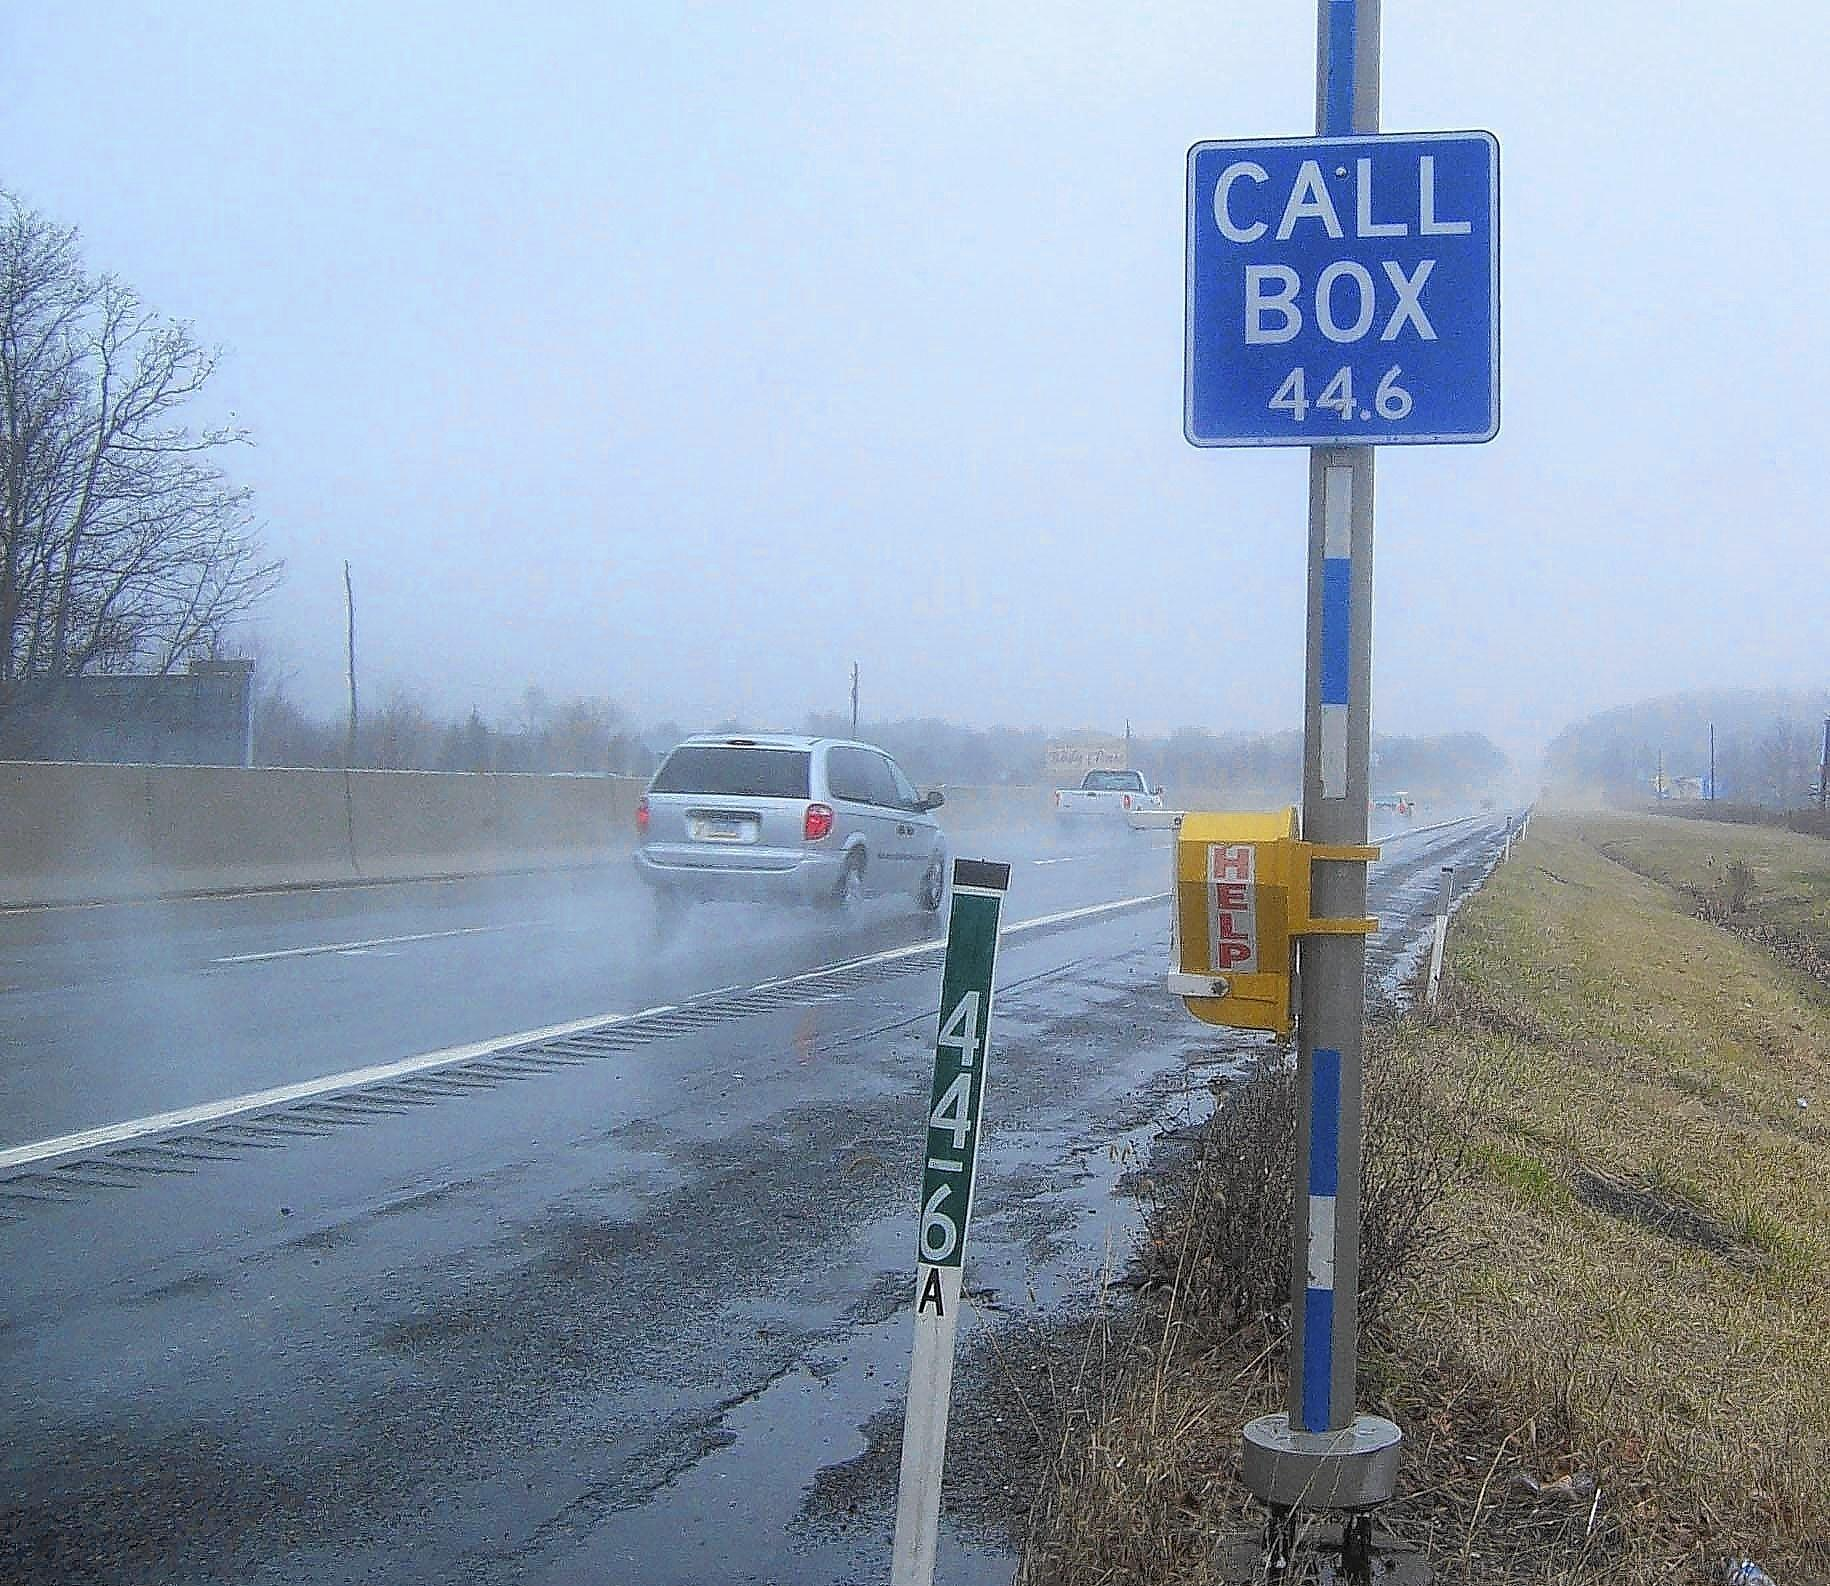 Despite the popularity of cellphones, Turnpike officials believe that their call box system continues to serve a valuable purpose.